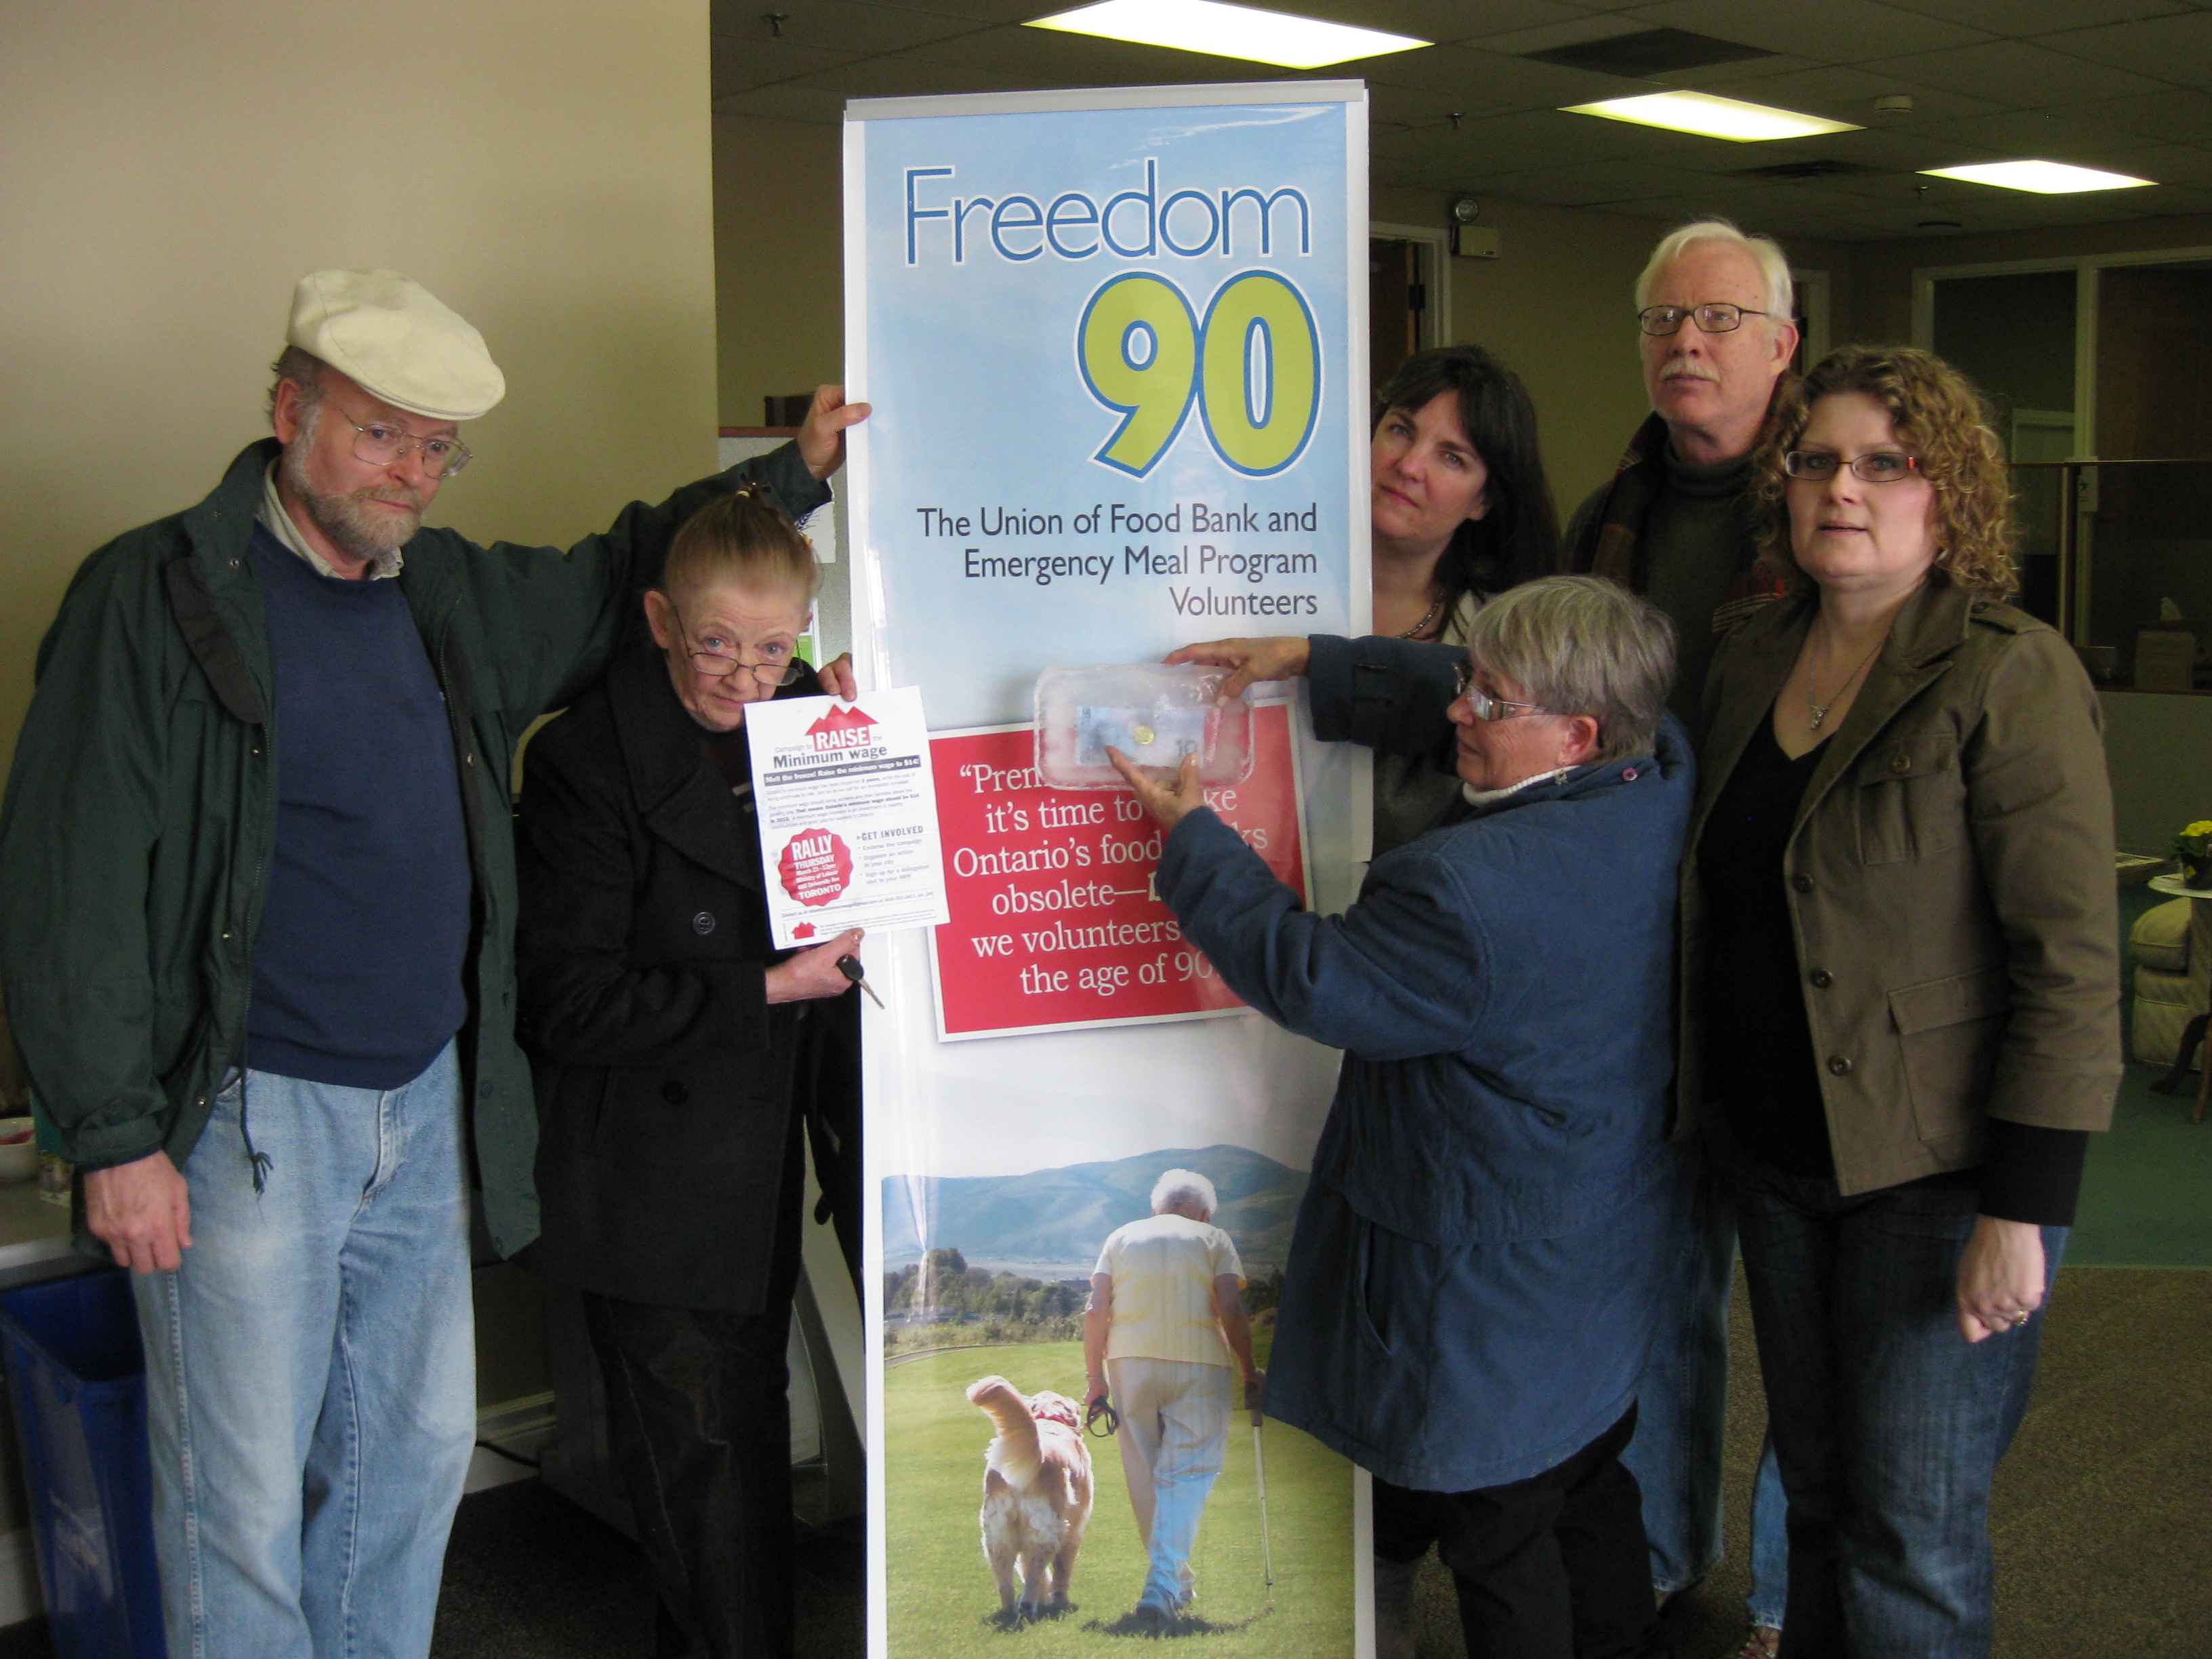 Freedom 90 Delegation gets ready to visit 6 York Region MPPs